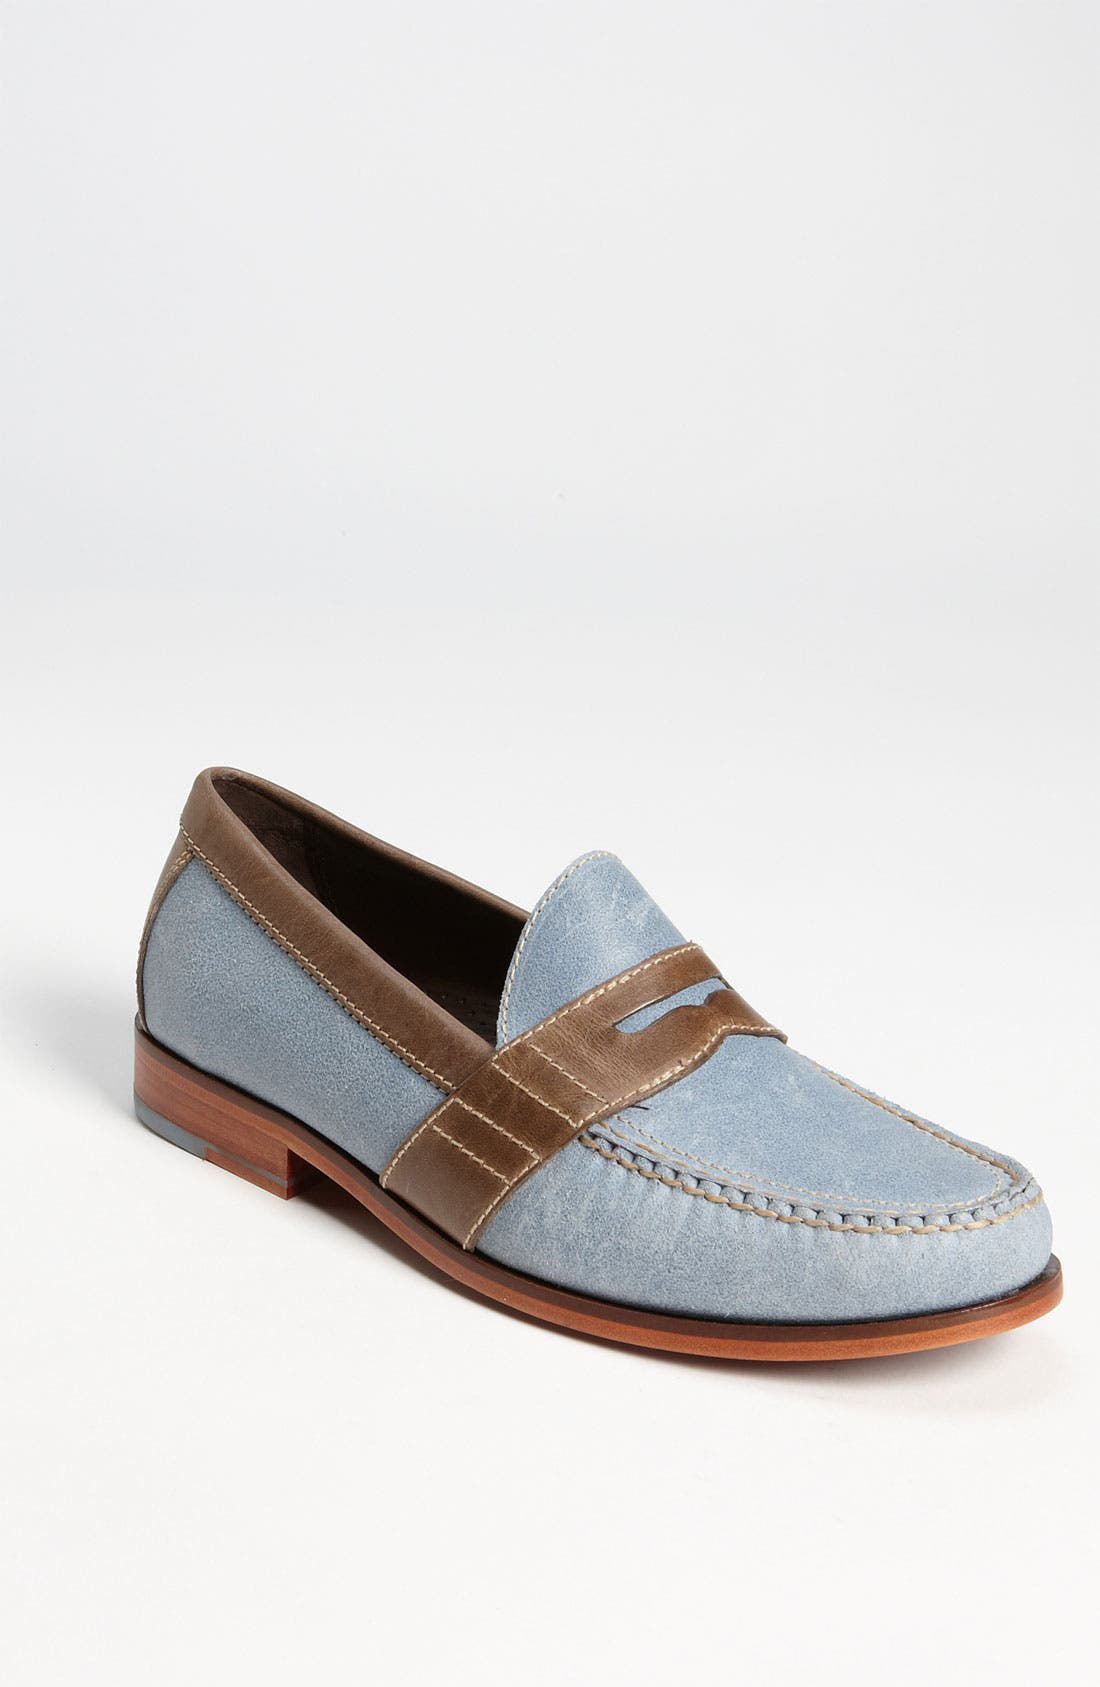 Main Image - Cole Haan 'Air Monroe' Loafer